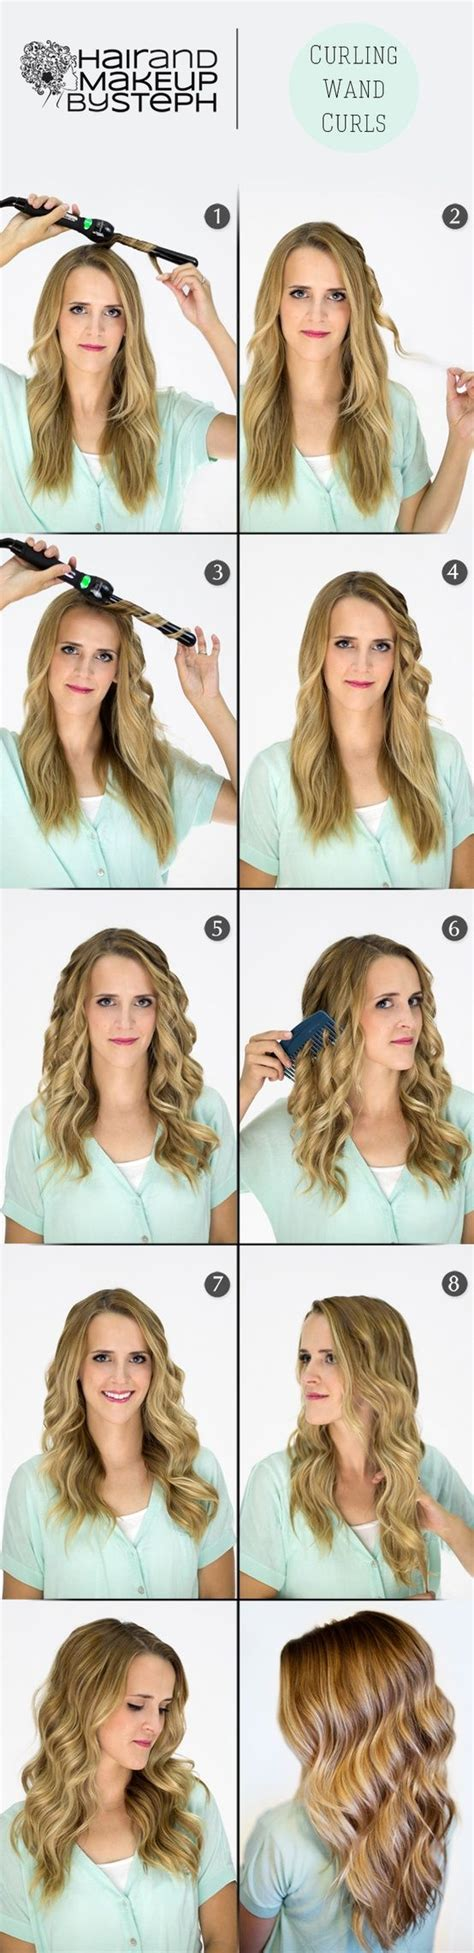 hairstyles with the wand curling wand waves hair styles pinterest curls